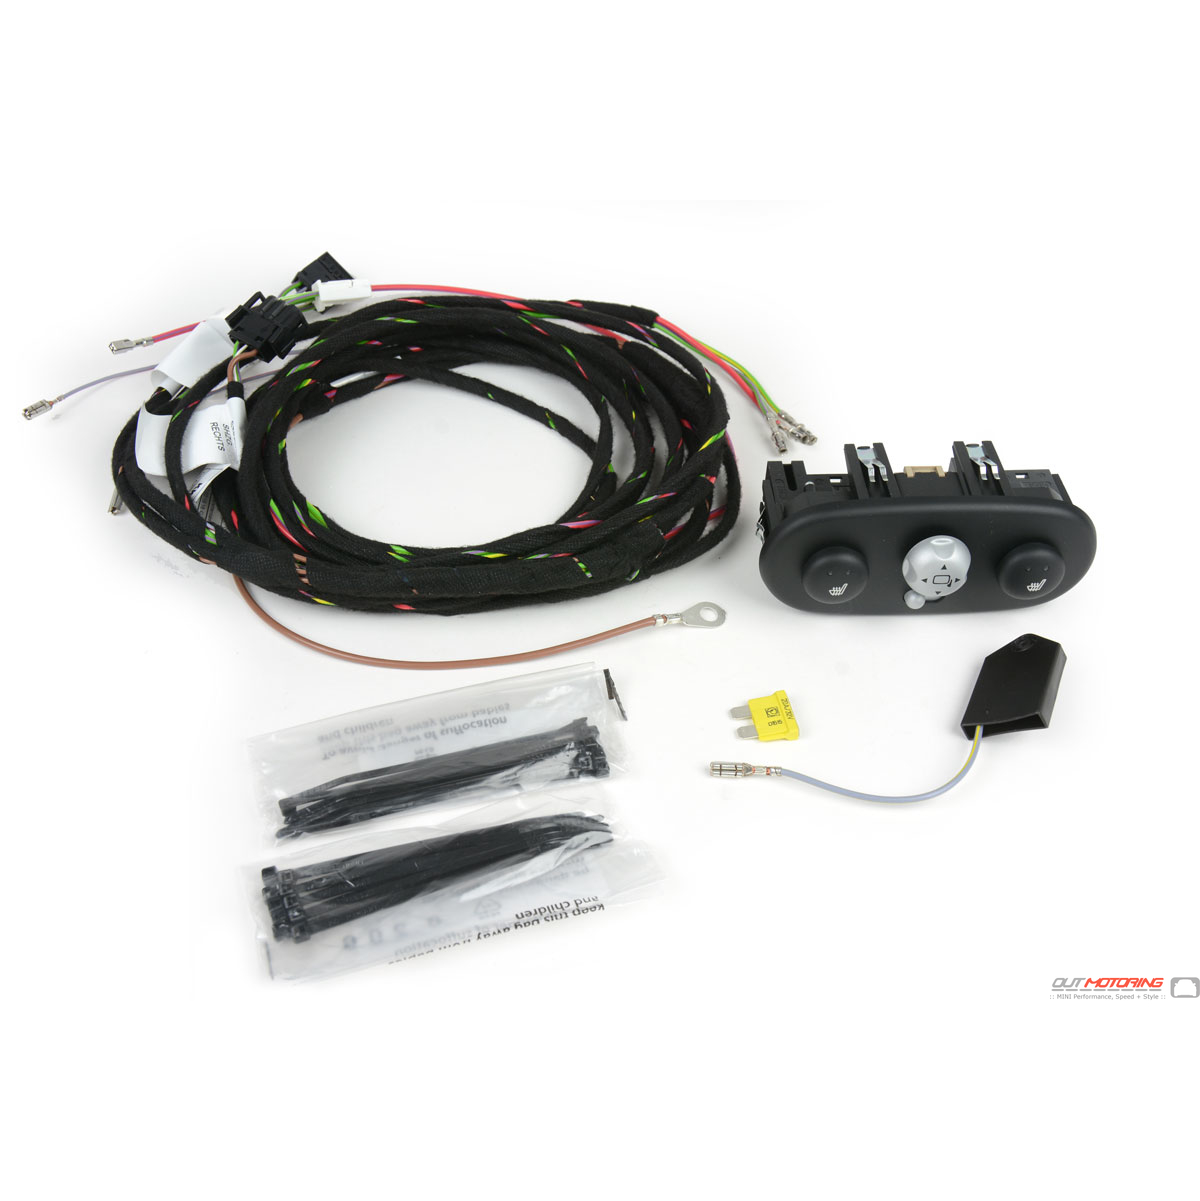 Heated Seat Retrofit Kit Heated Seat Retrofit Kit ...